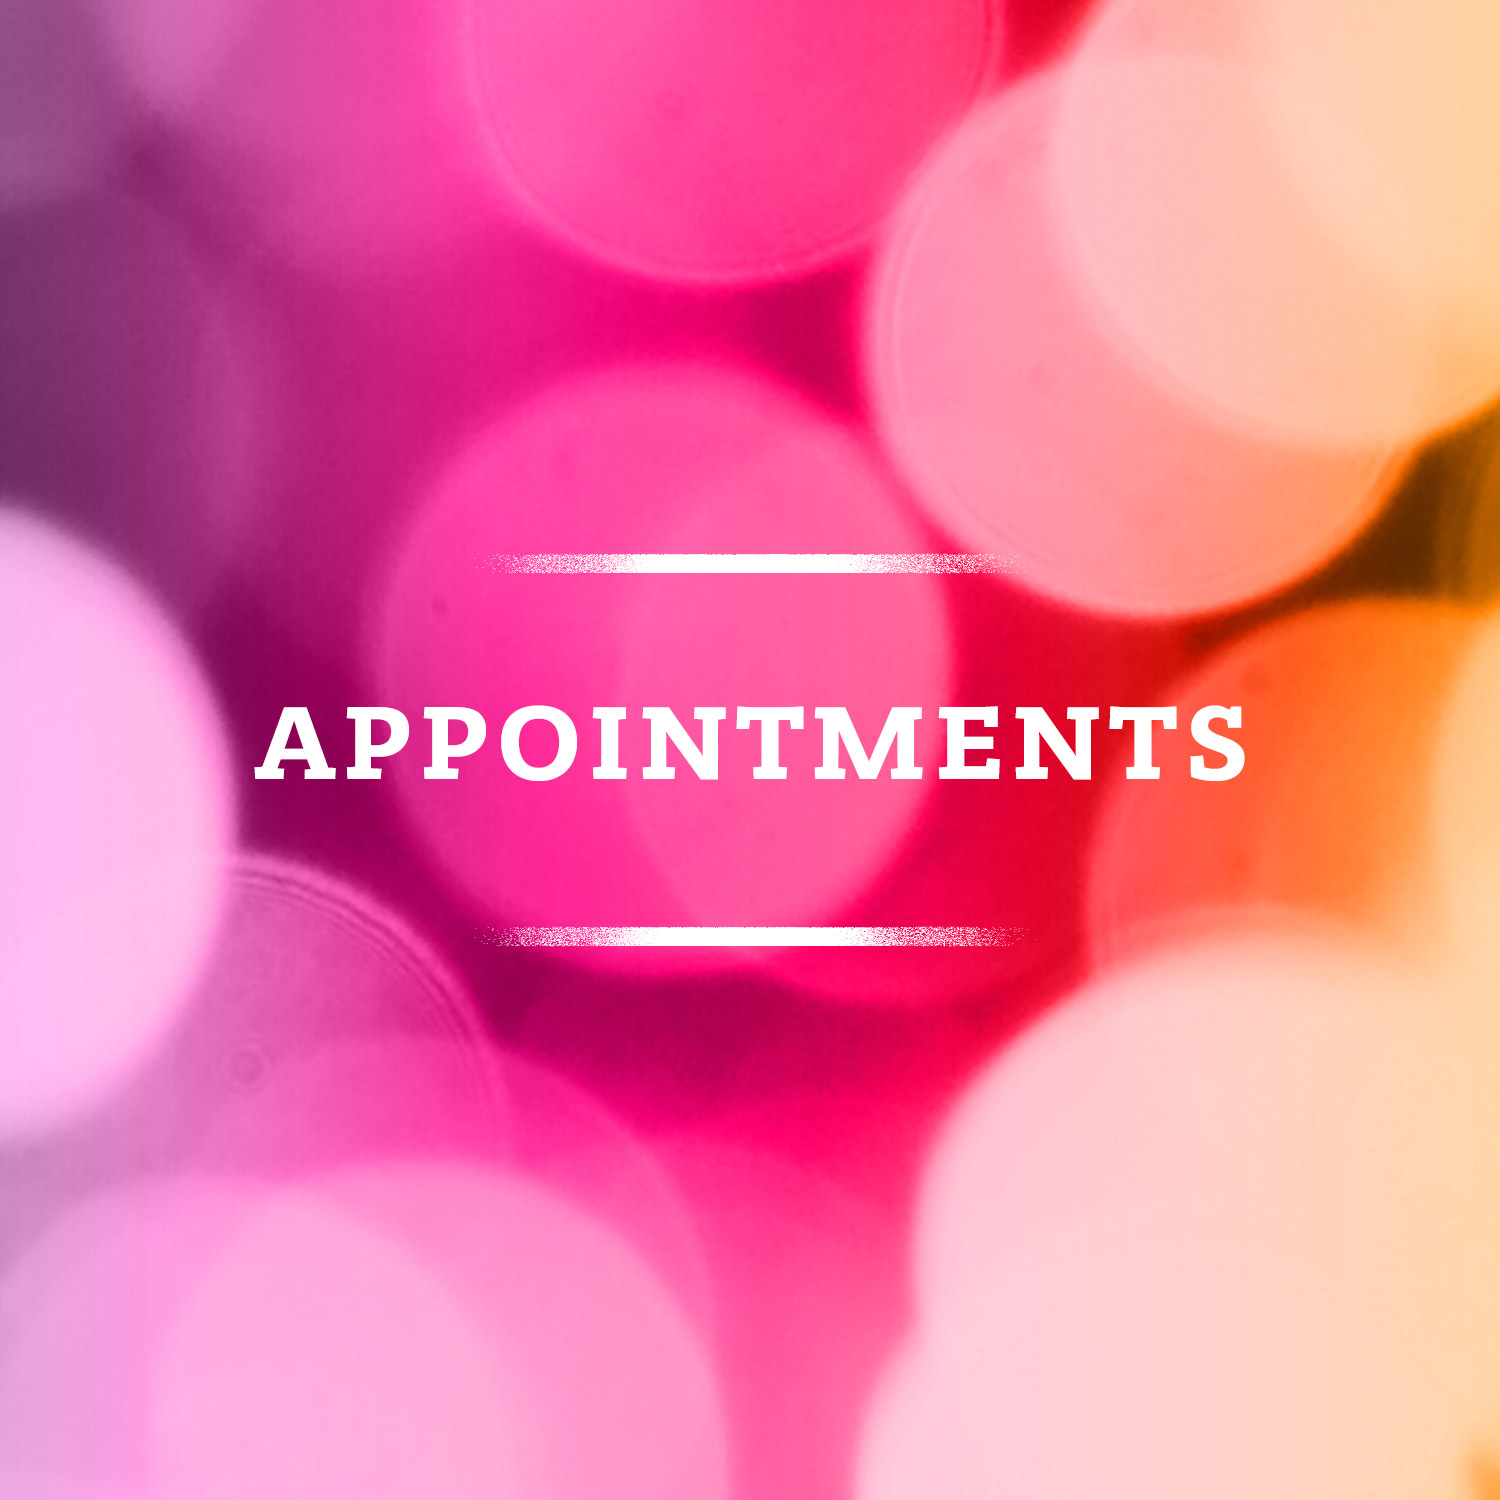 CSPAC_IMAGES_0001_APPOINTMENTS.jpg